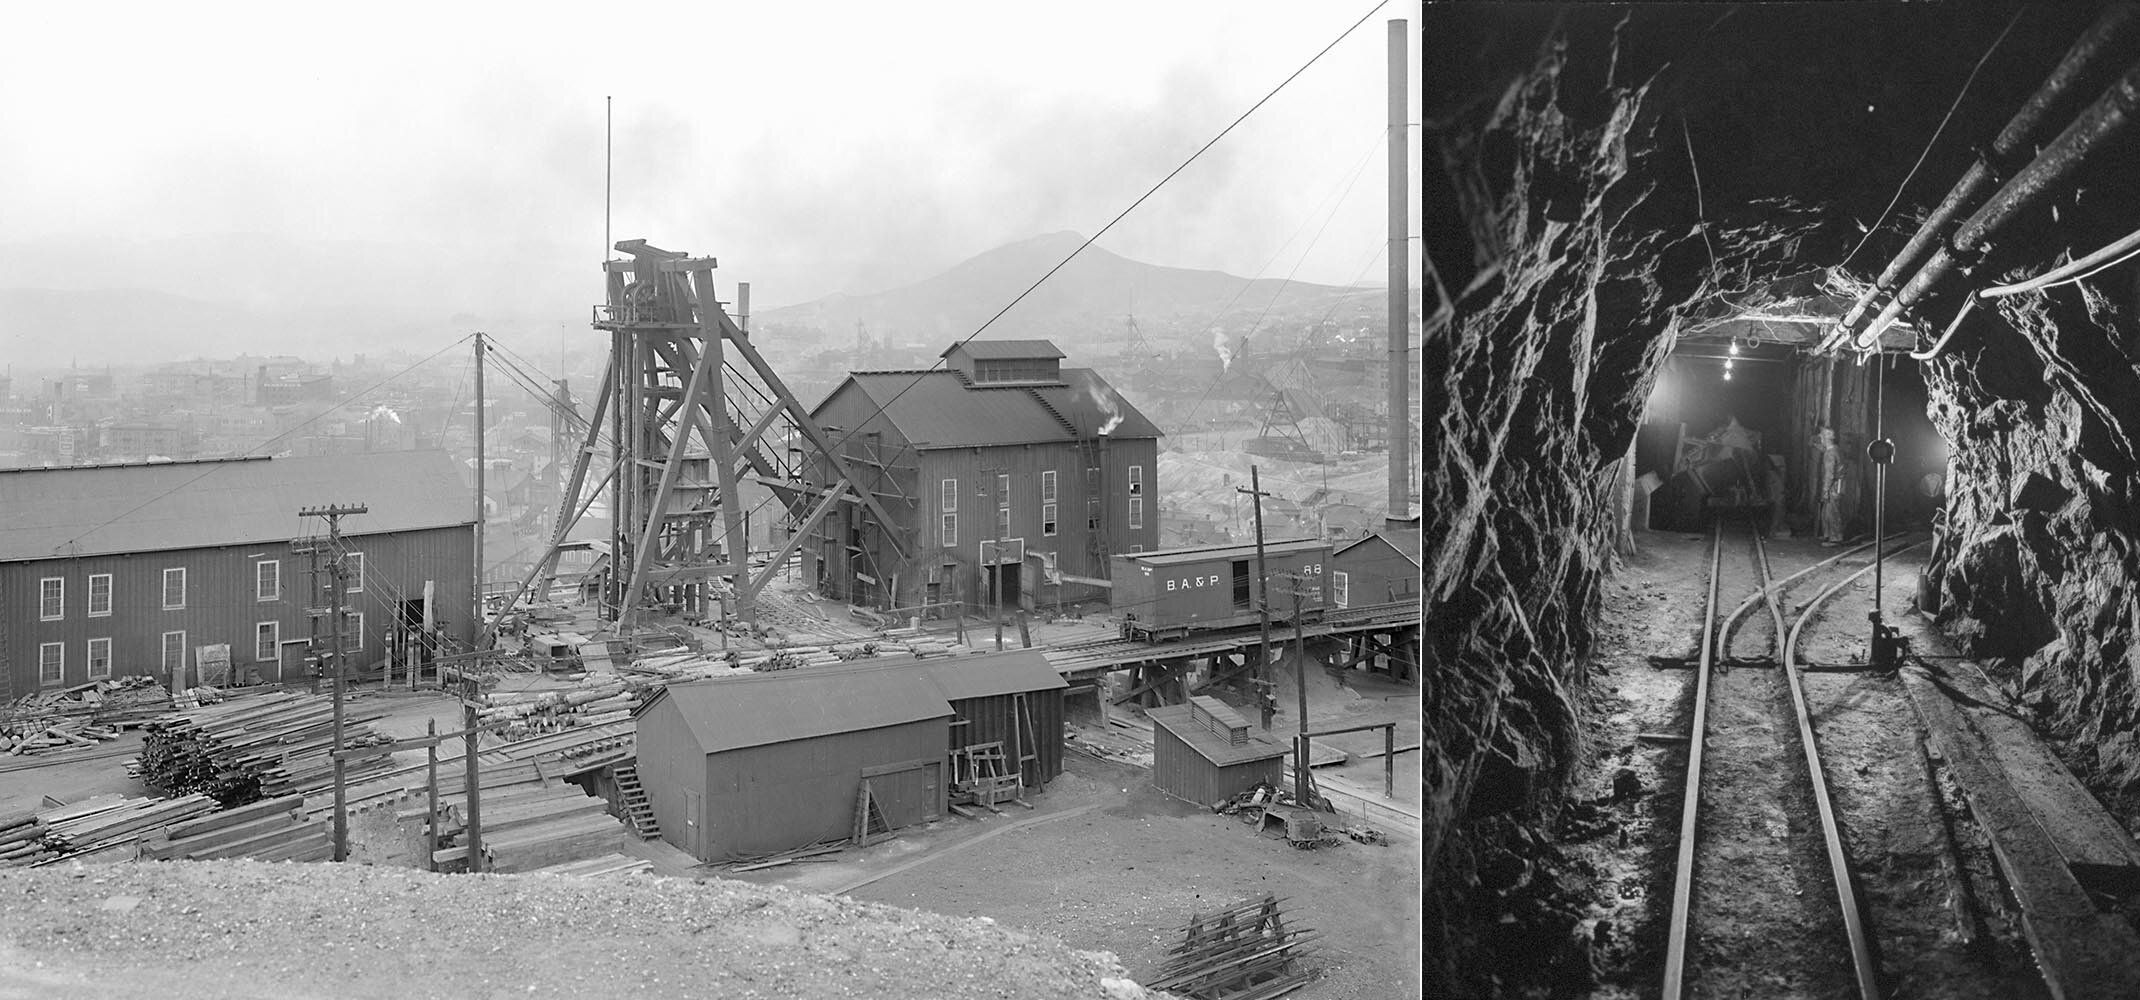 Left: Overview of the Anaconda Copper Mine operation in Butte, Montana, in the early 20th century. Right: Anaconda